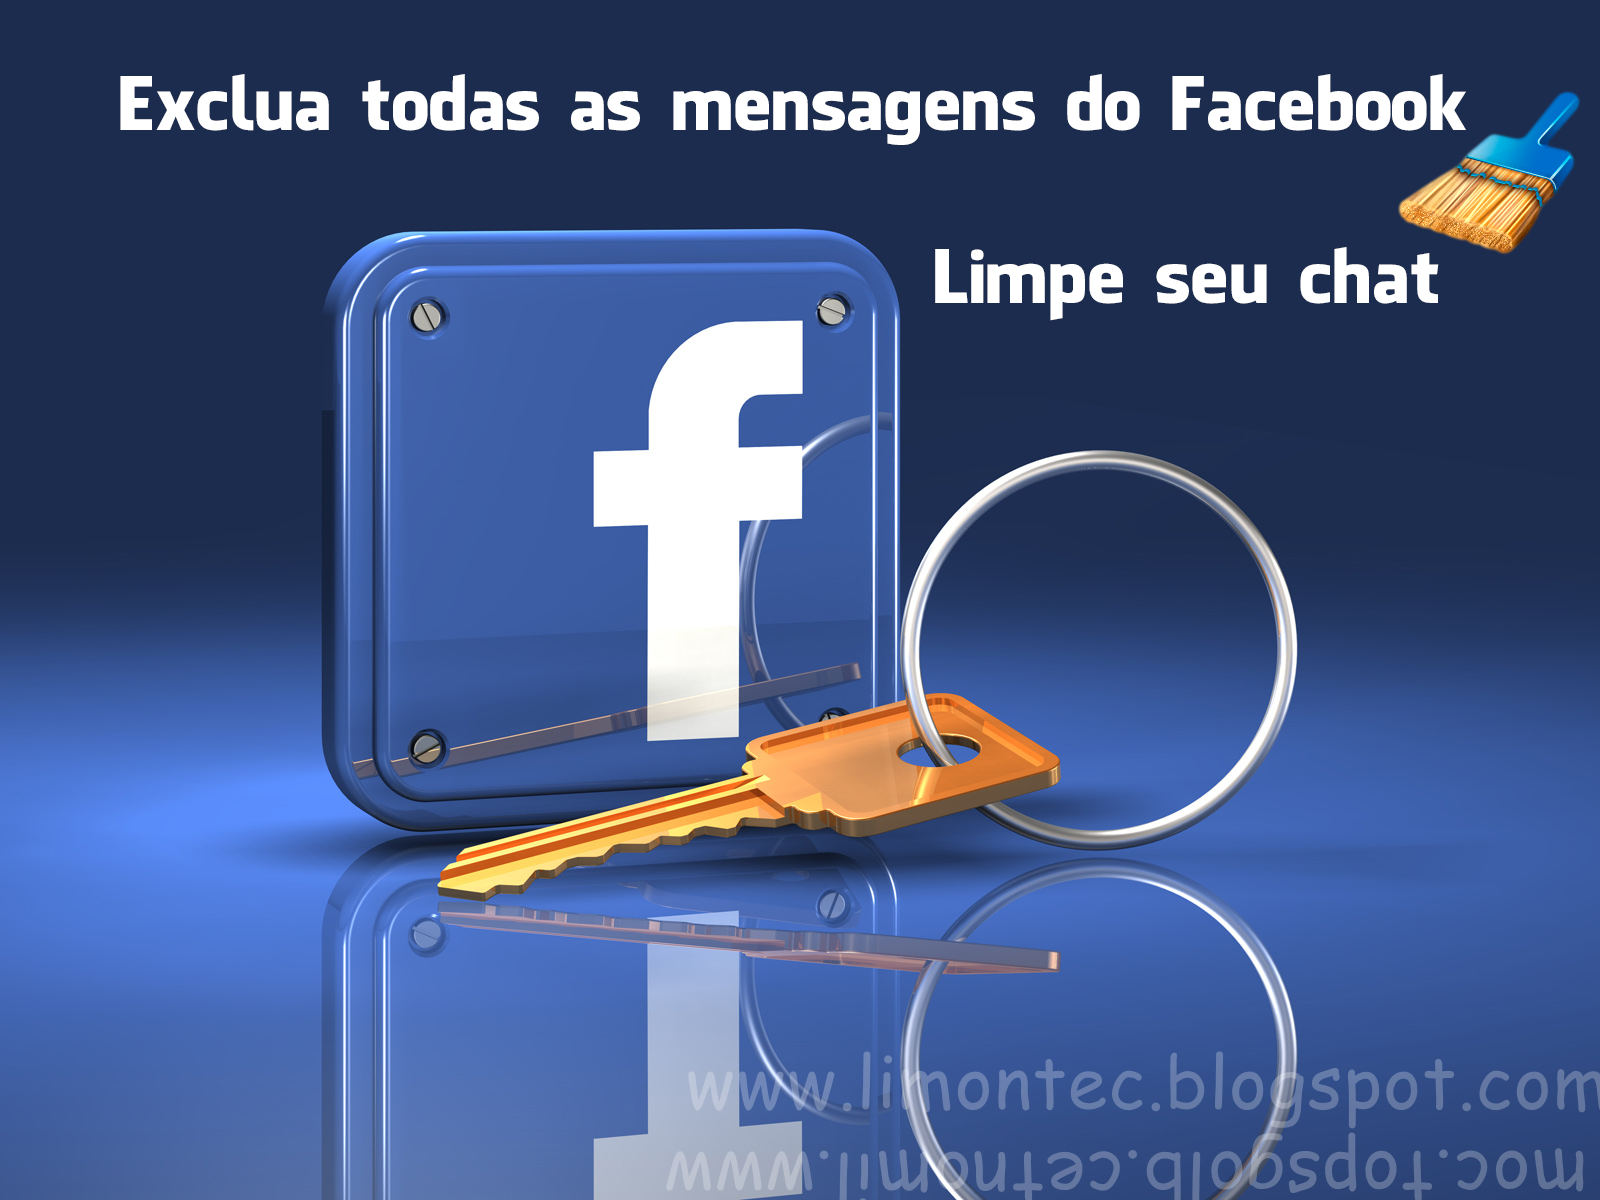 Facebook - Imagem retirada do Google / Modificada por: Limon Tec